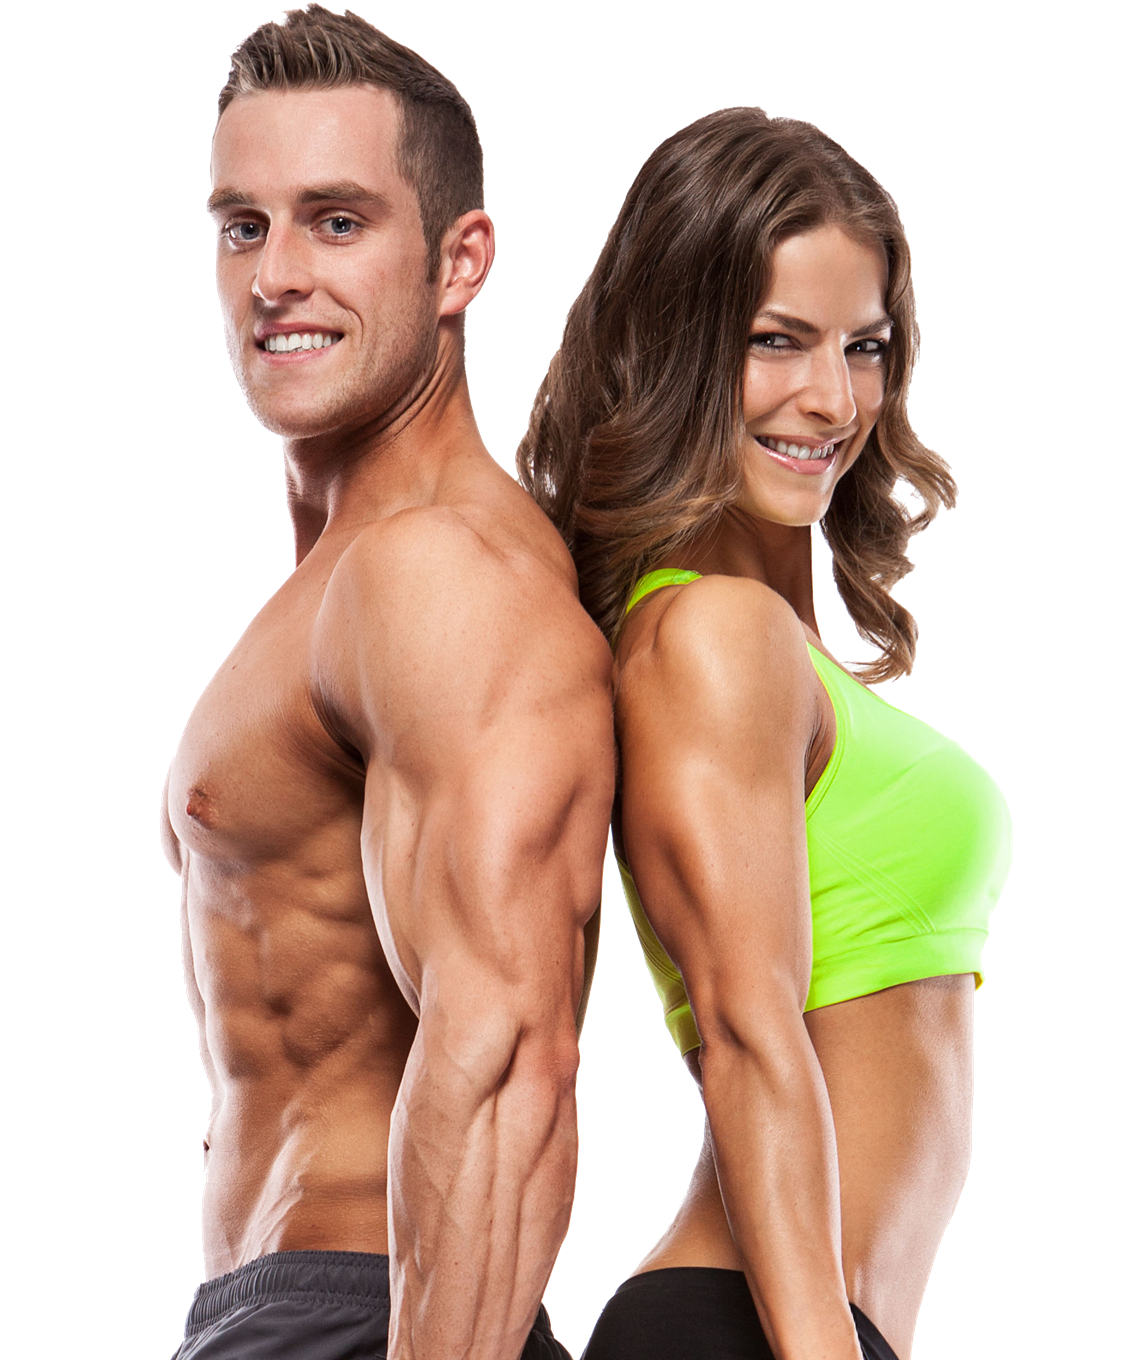 Fitness png. Clipart mart card from